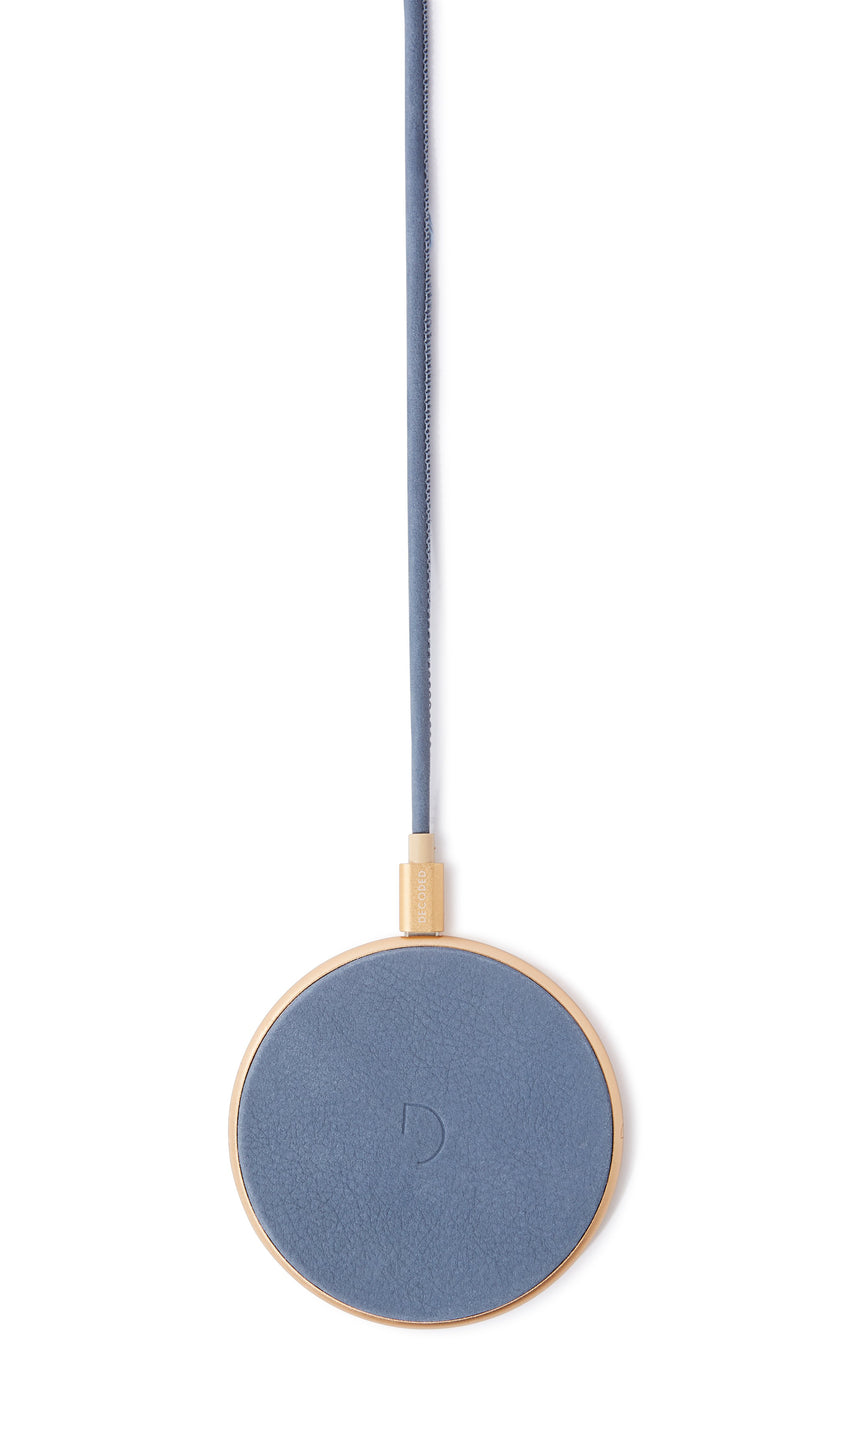 FastPad Wireless Charger Ash Blue / Gold-Wireless Charger-Decoded Bags